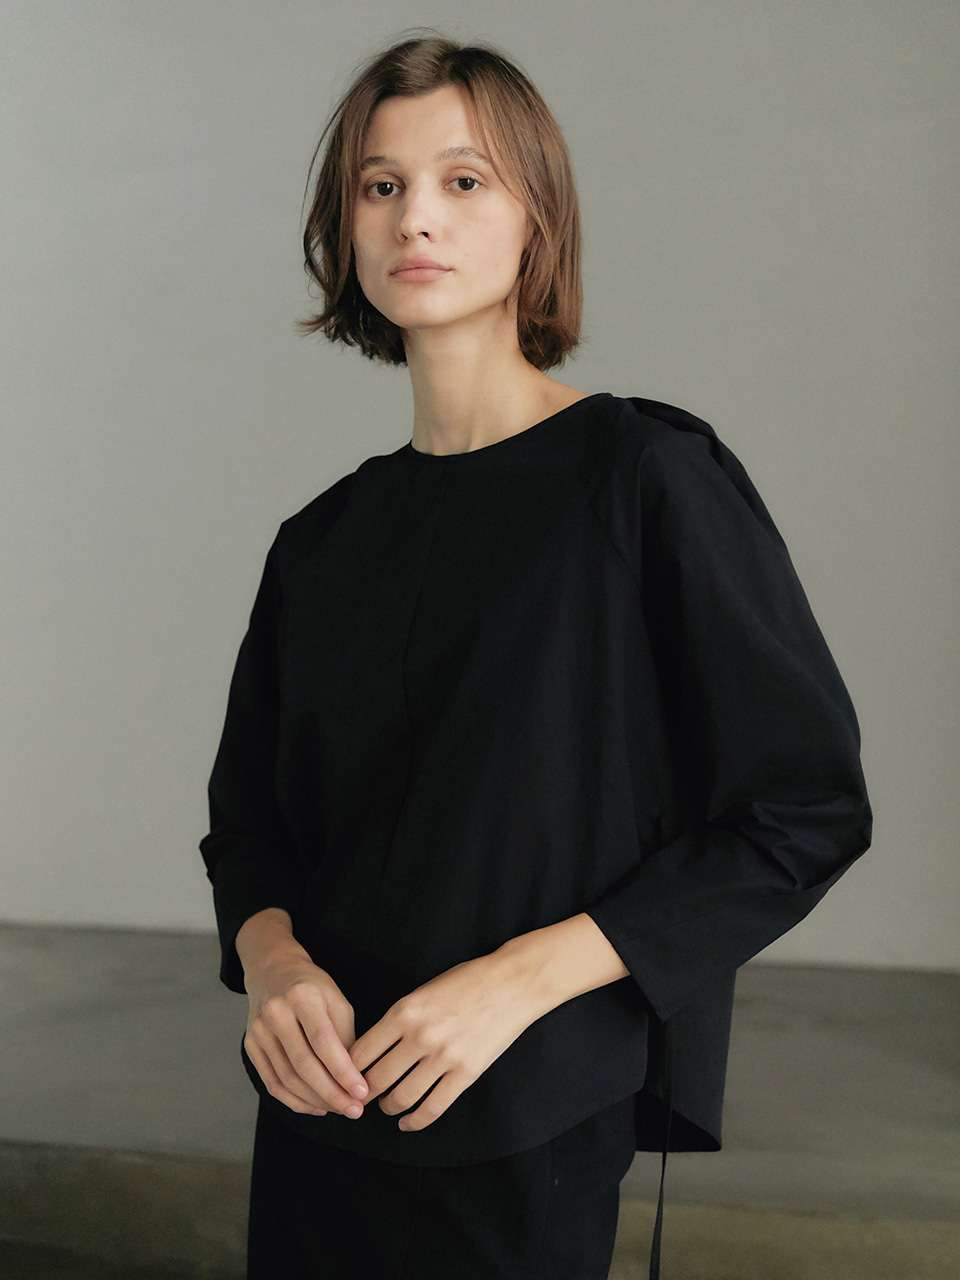 Round volume blouse - Black